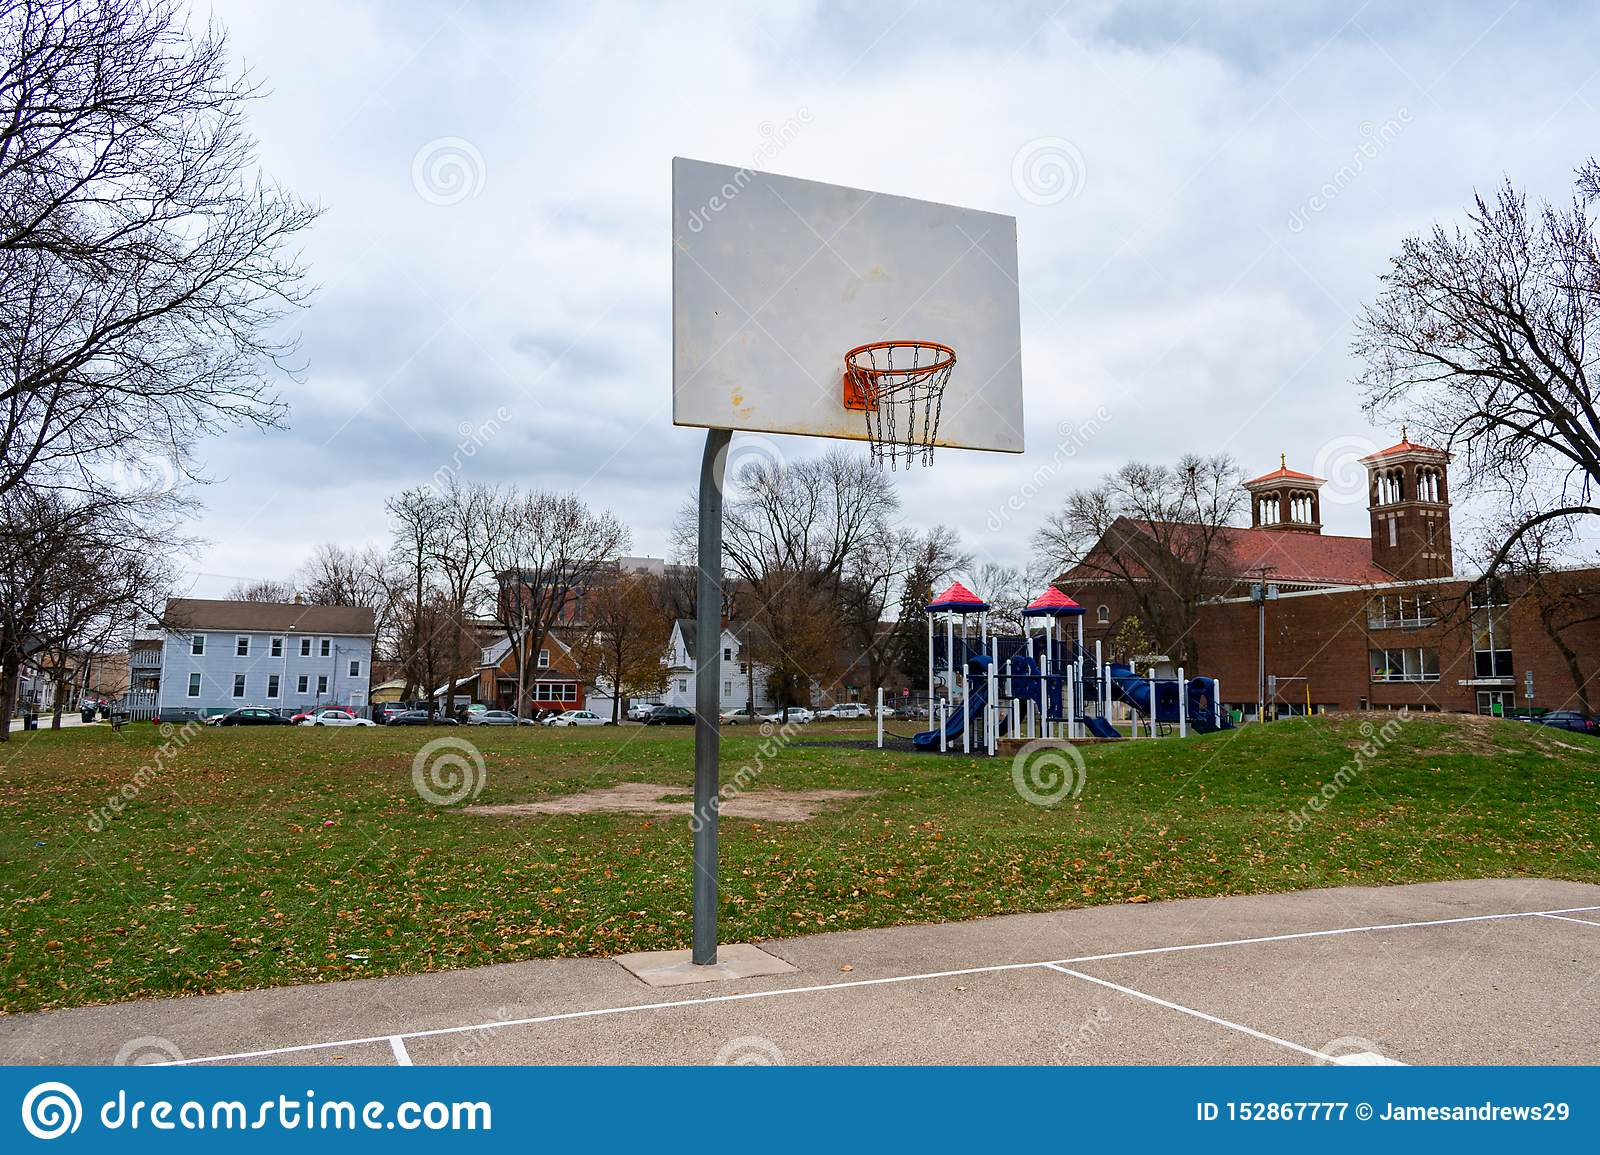 Basketball Hoop in a Midwestern Park on a Cold Day